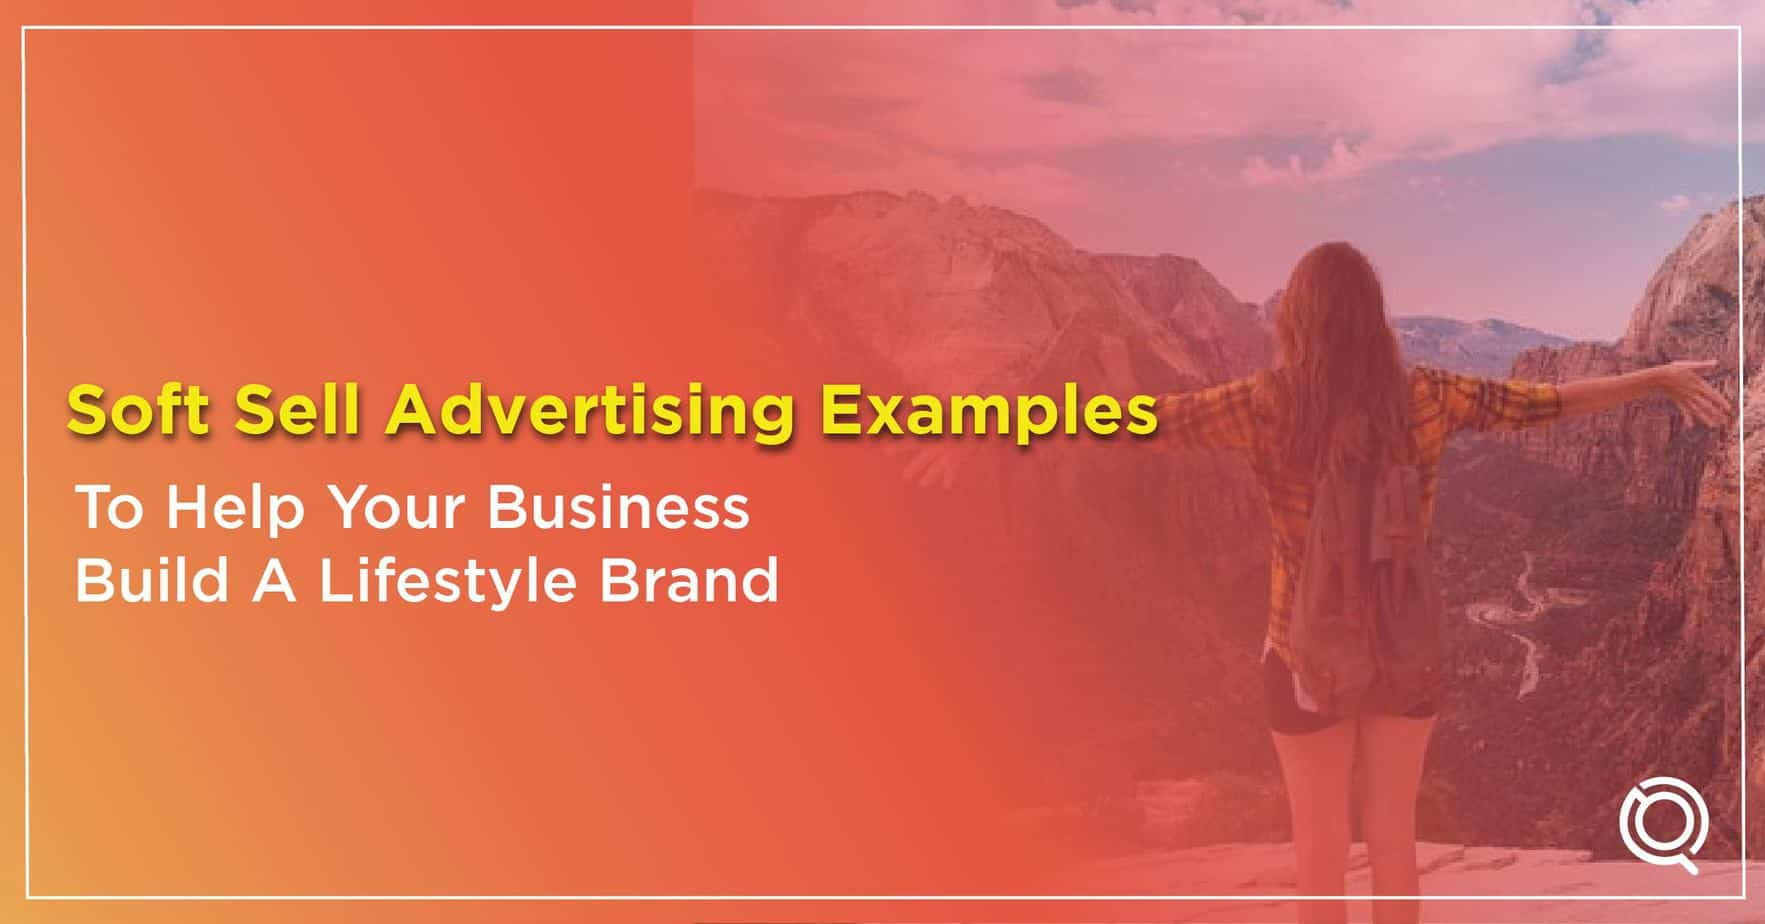 Soft Sell Advertising Examples To Help Your Business Build A Lifestyle Brand - One Search Pro Digital Marketing Strategy